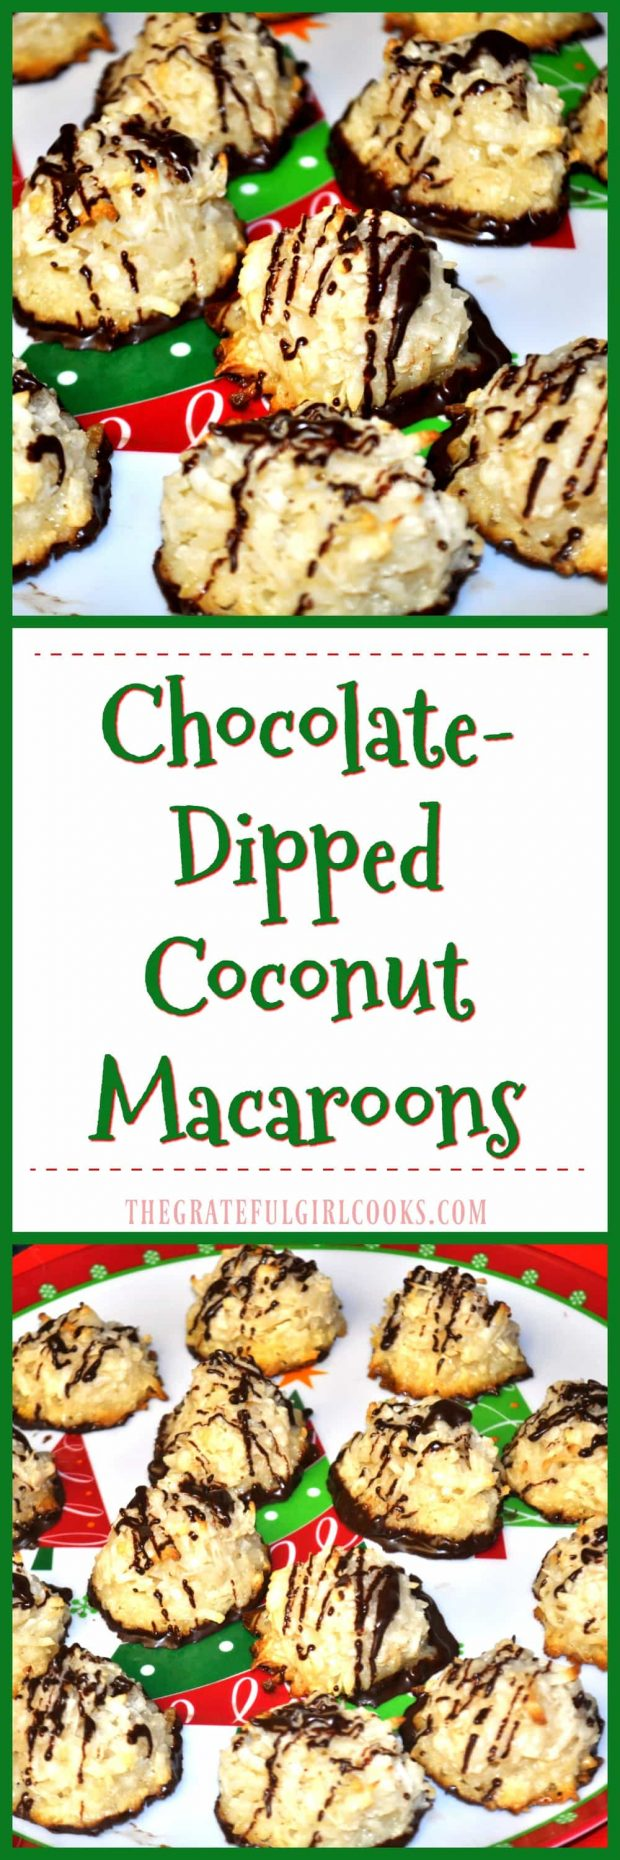 Chocolate-Dipped Coconut Macaroons / The Grateful Girl Cooks!